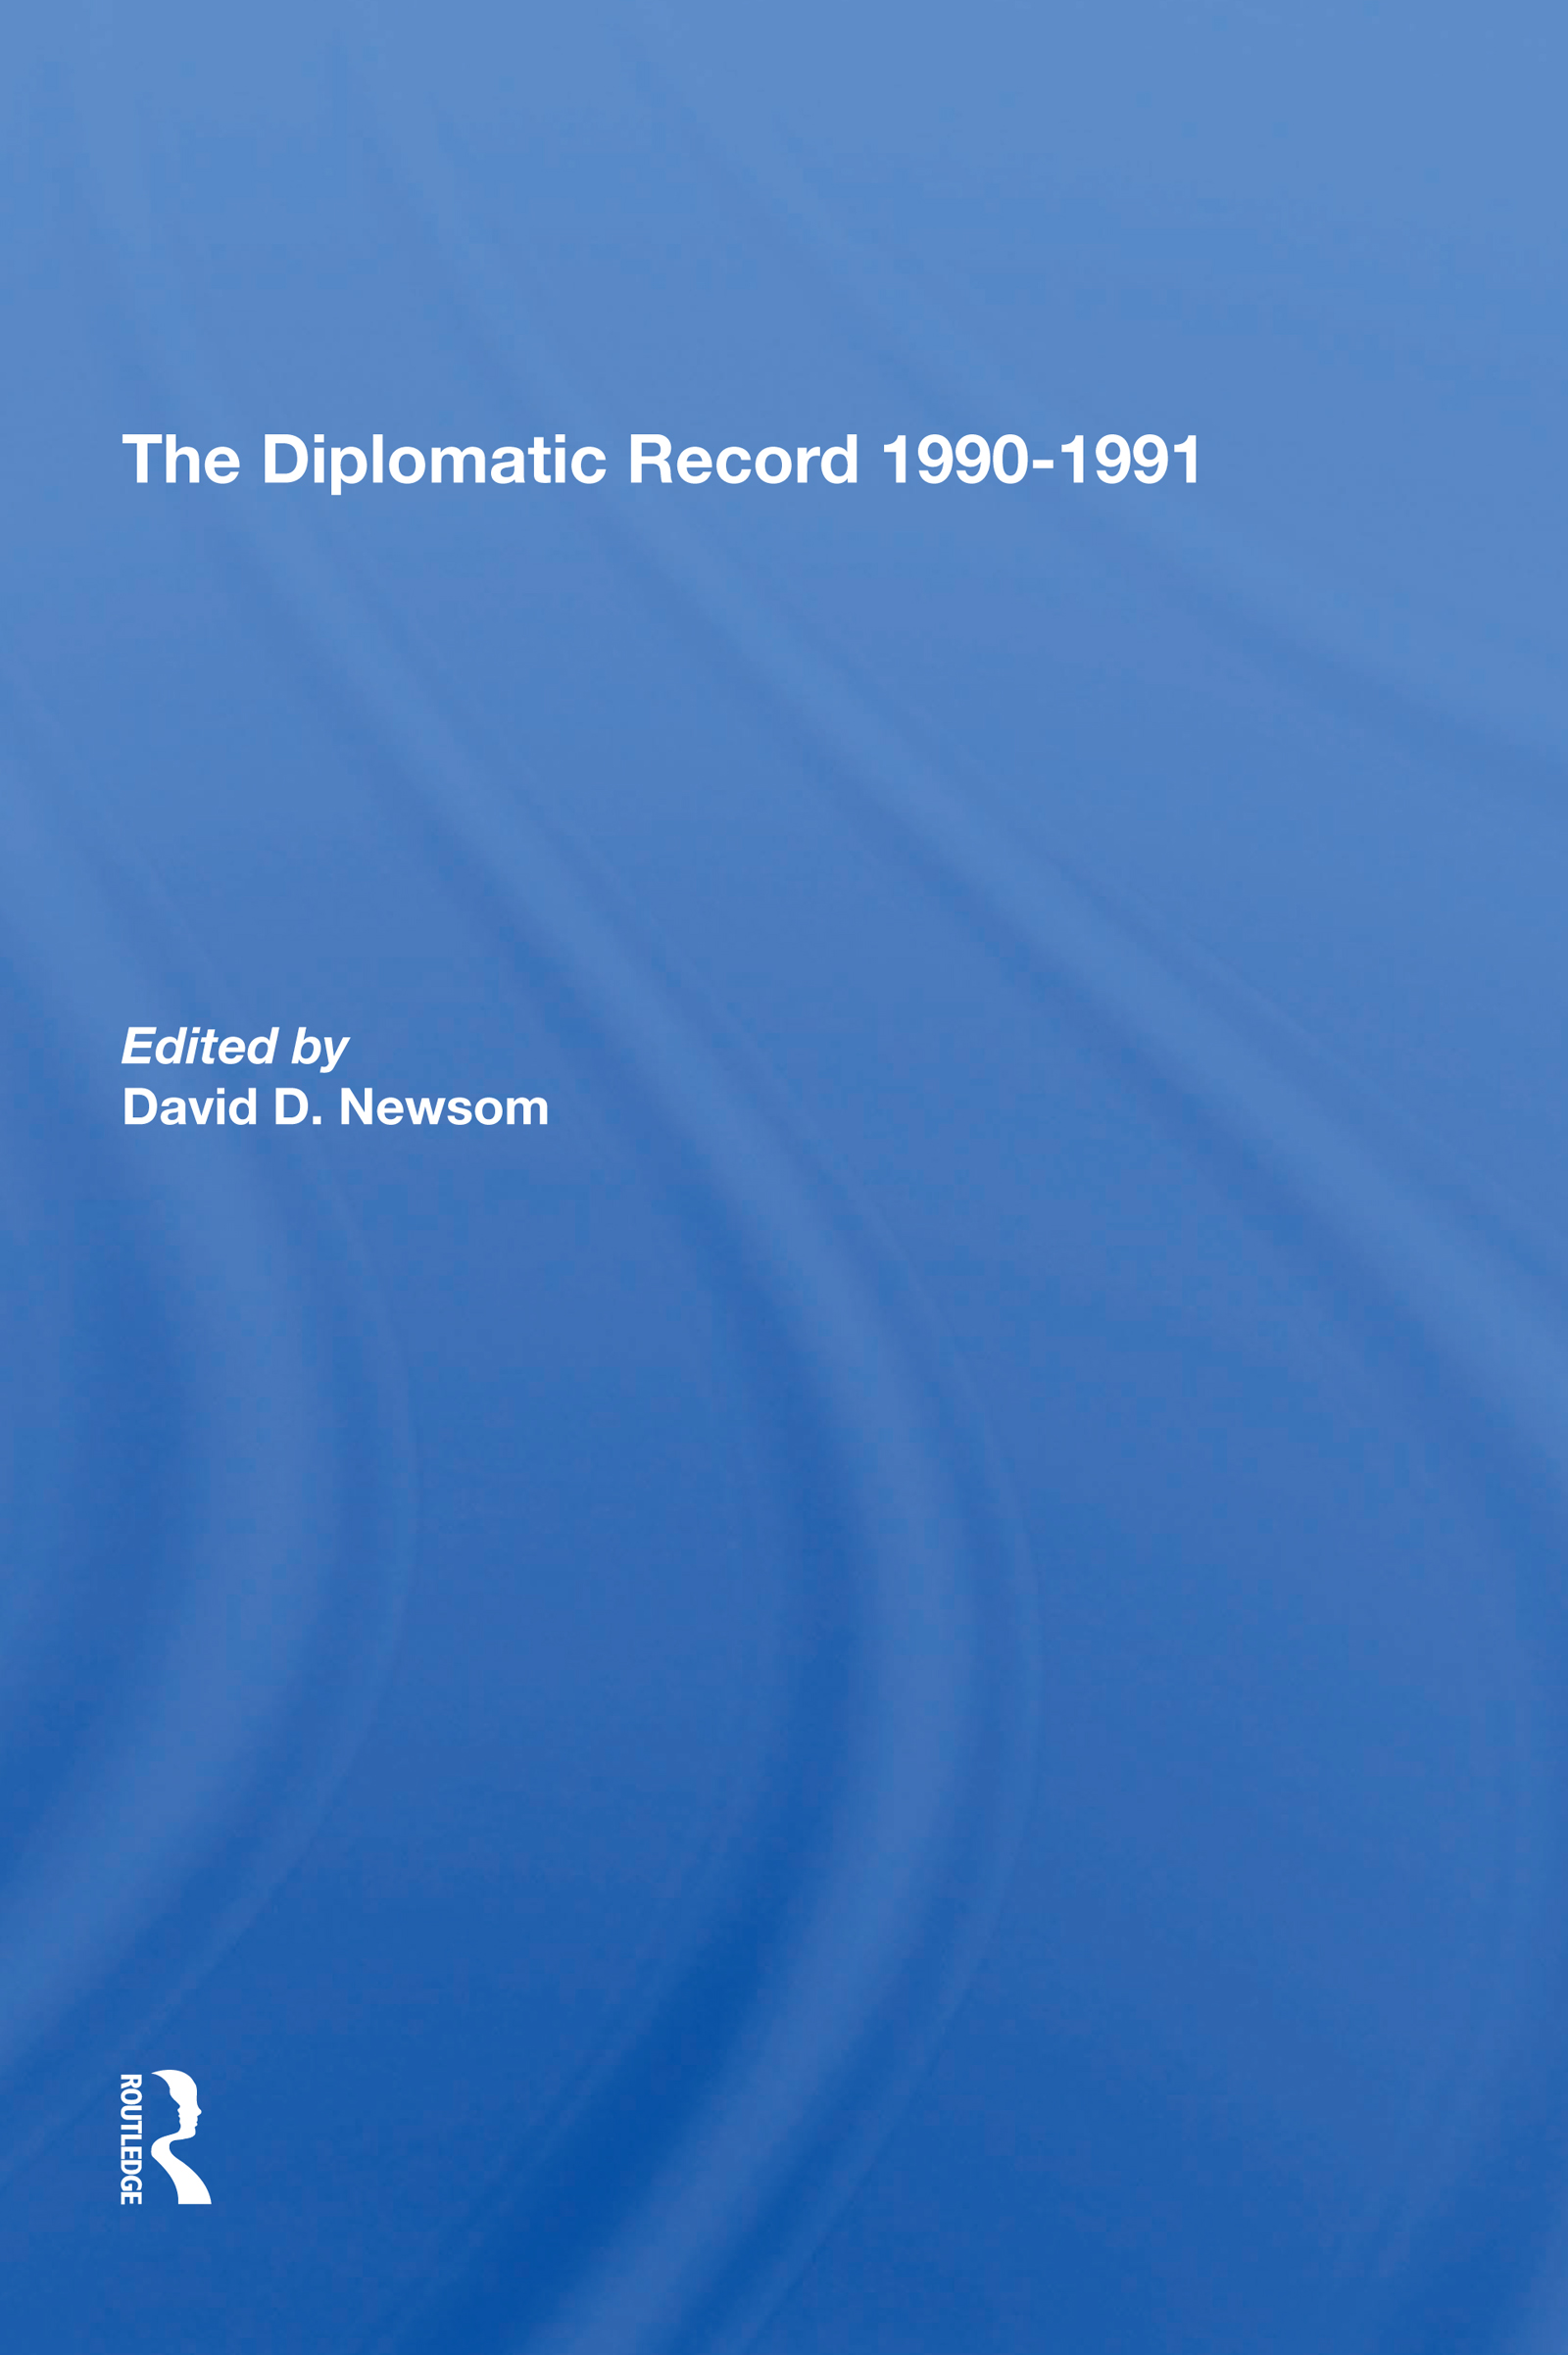 The Diplomatic Record 1990-1991